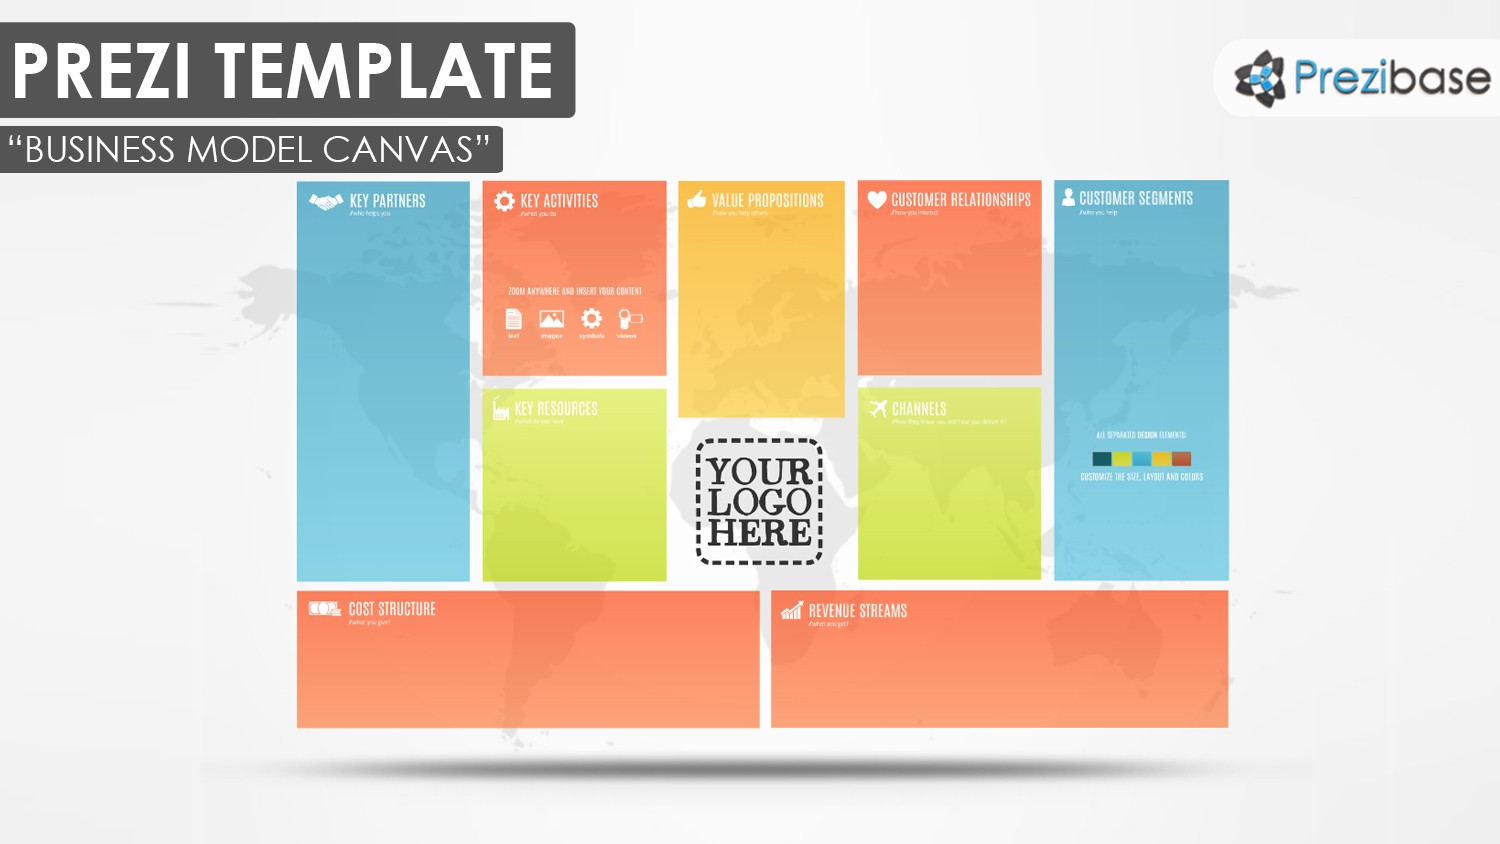 Business model canvas prezi template prezibase business model canvas colorful pitch world map prezi template friedricerecipe Image collections